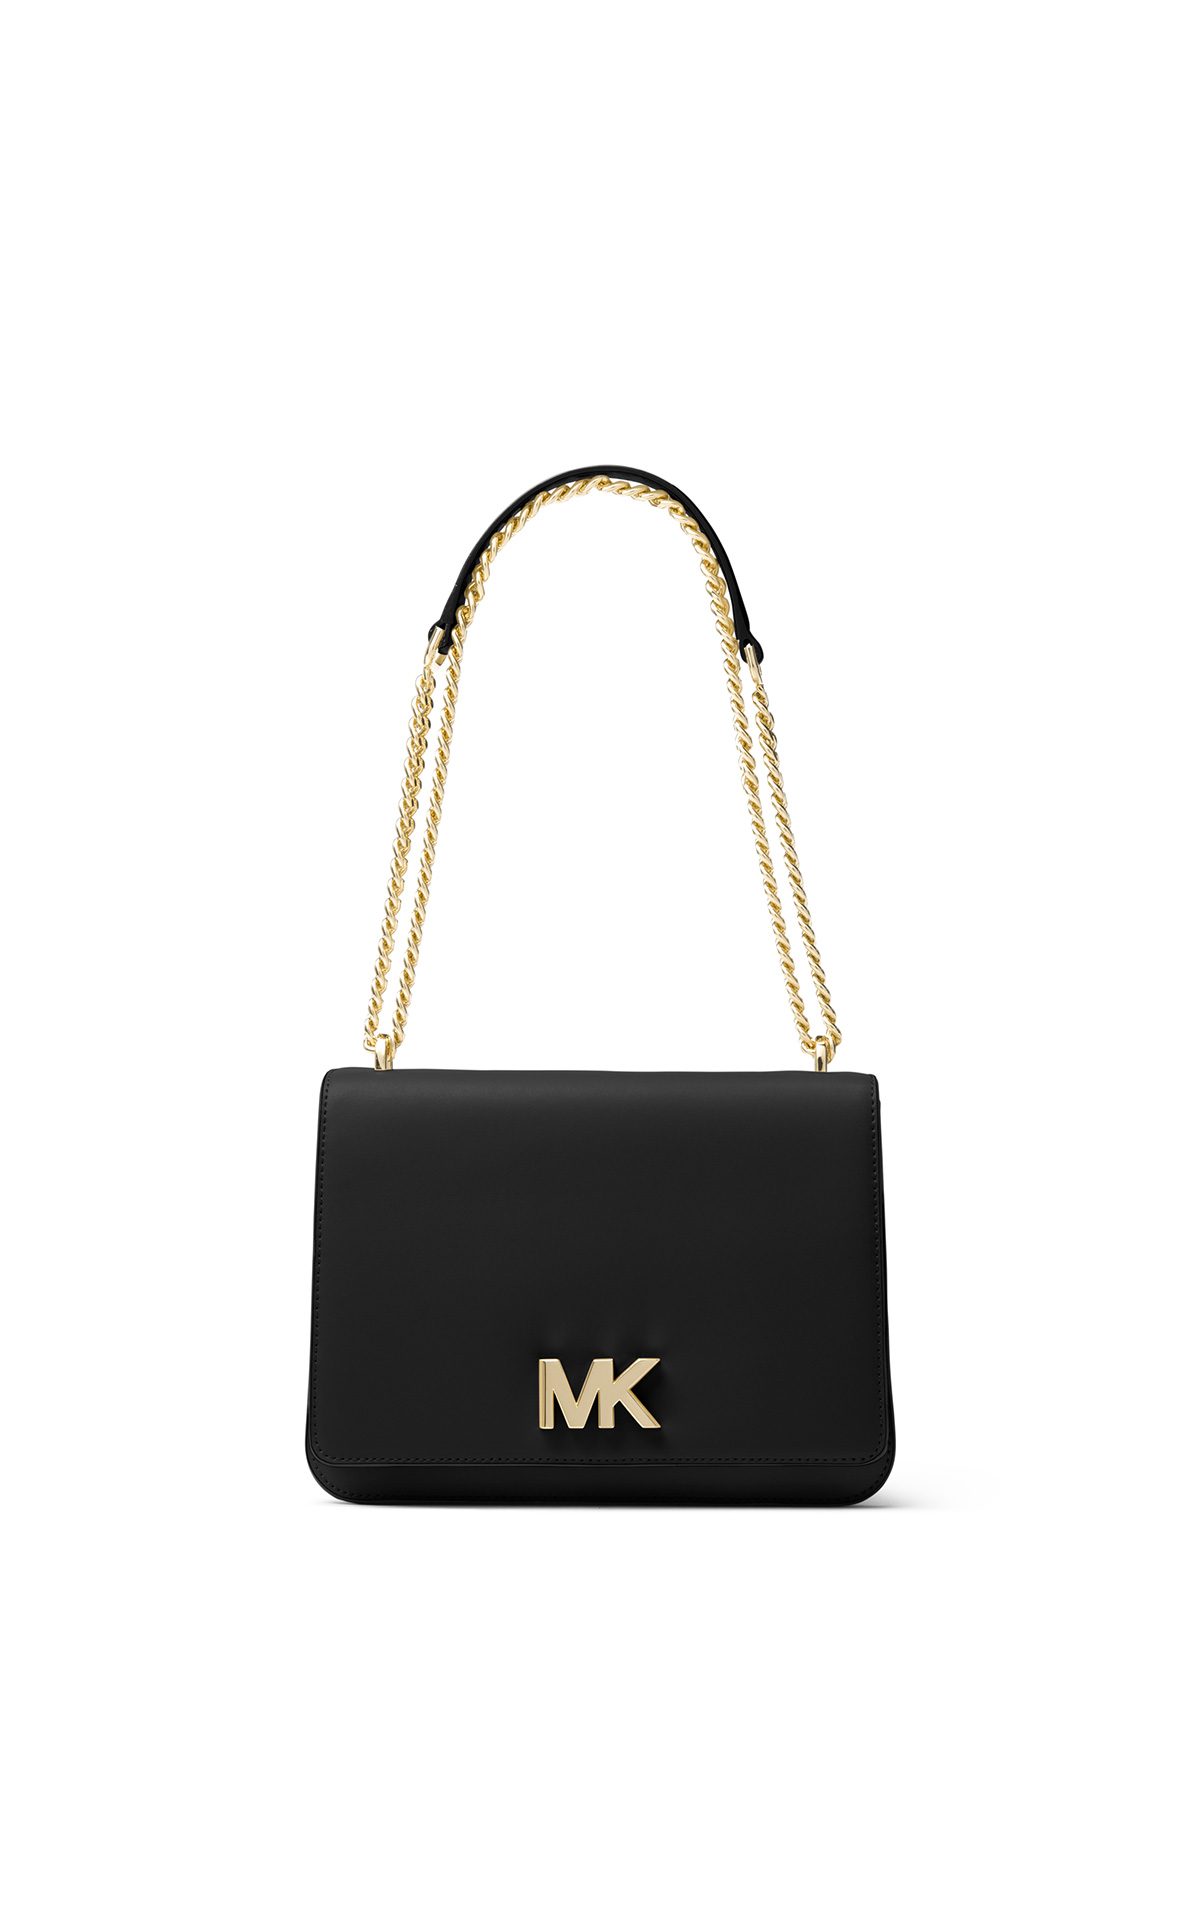 Michael Kors Women's large chain shoulder bag in black at The Bicester Village Shopping Collection